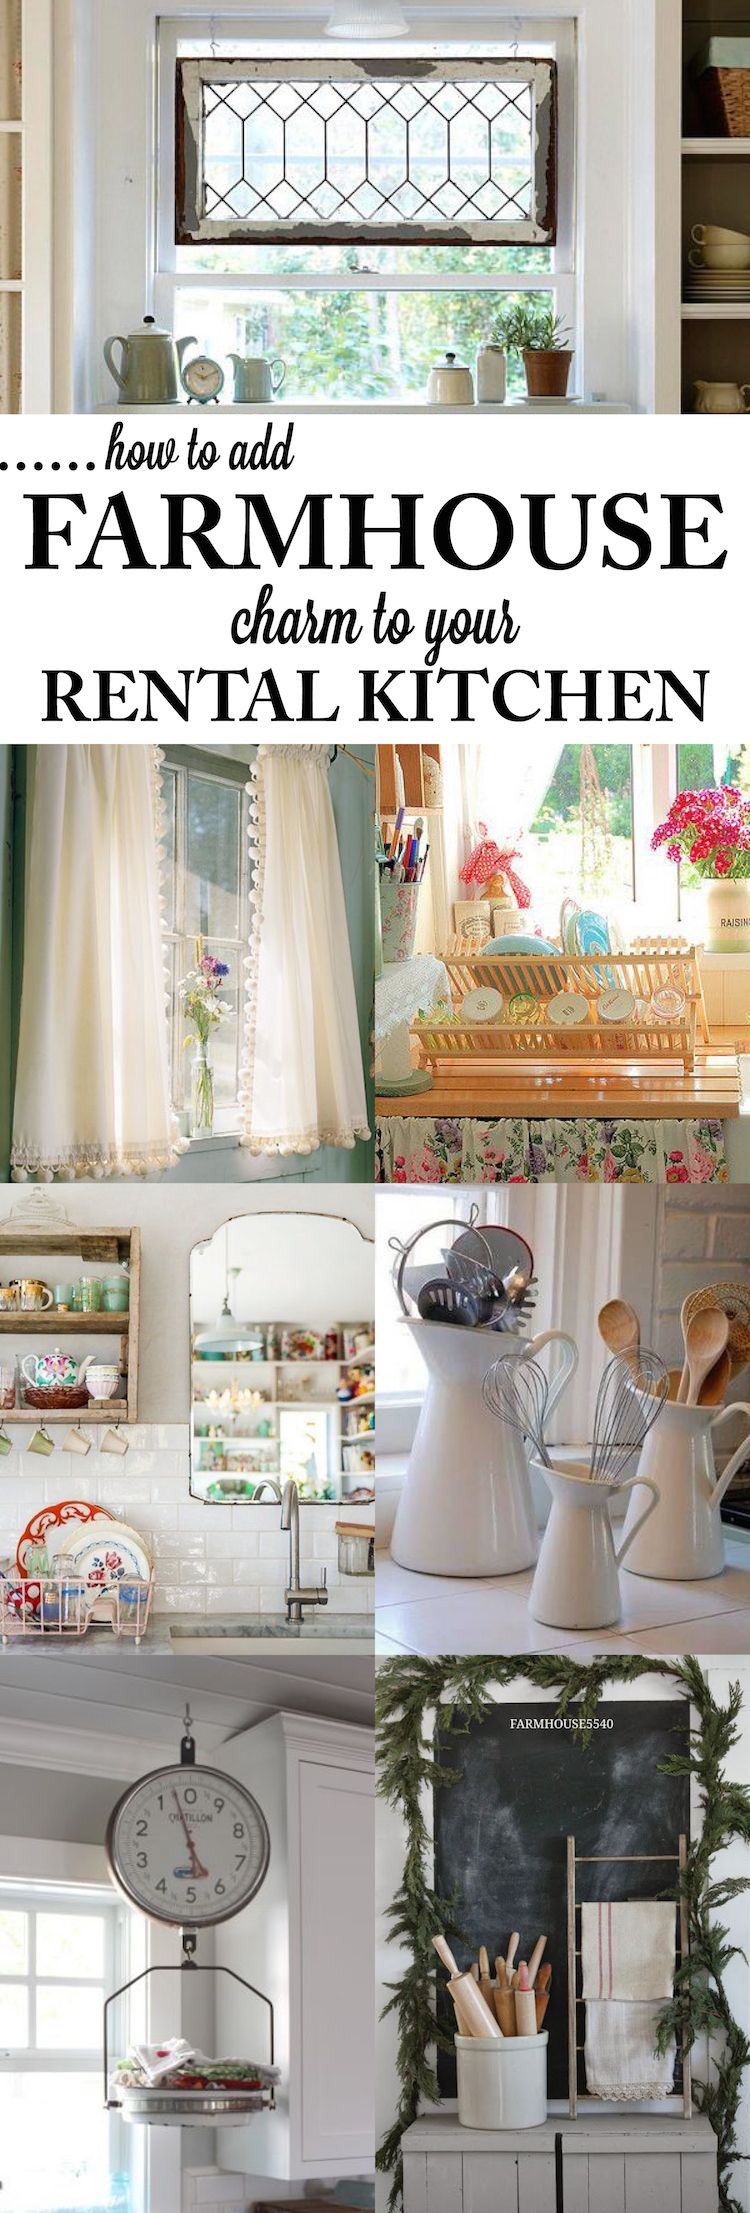 12 DIY Cheap and Easy Ideas to Upgrade Your Kitchen